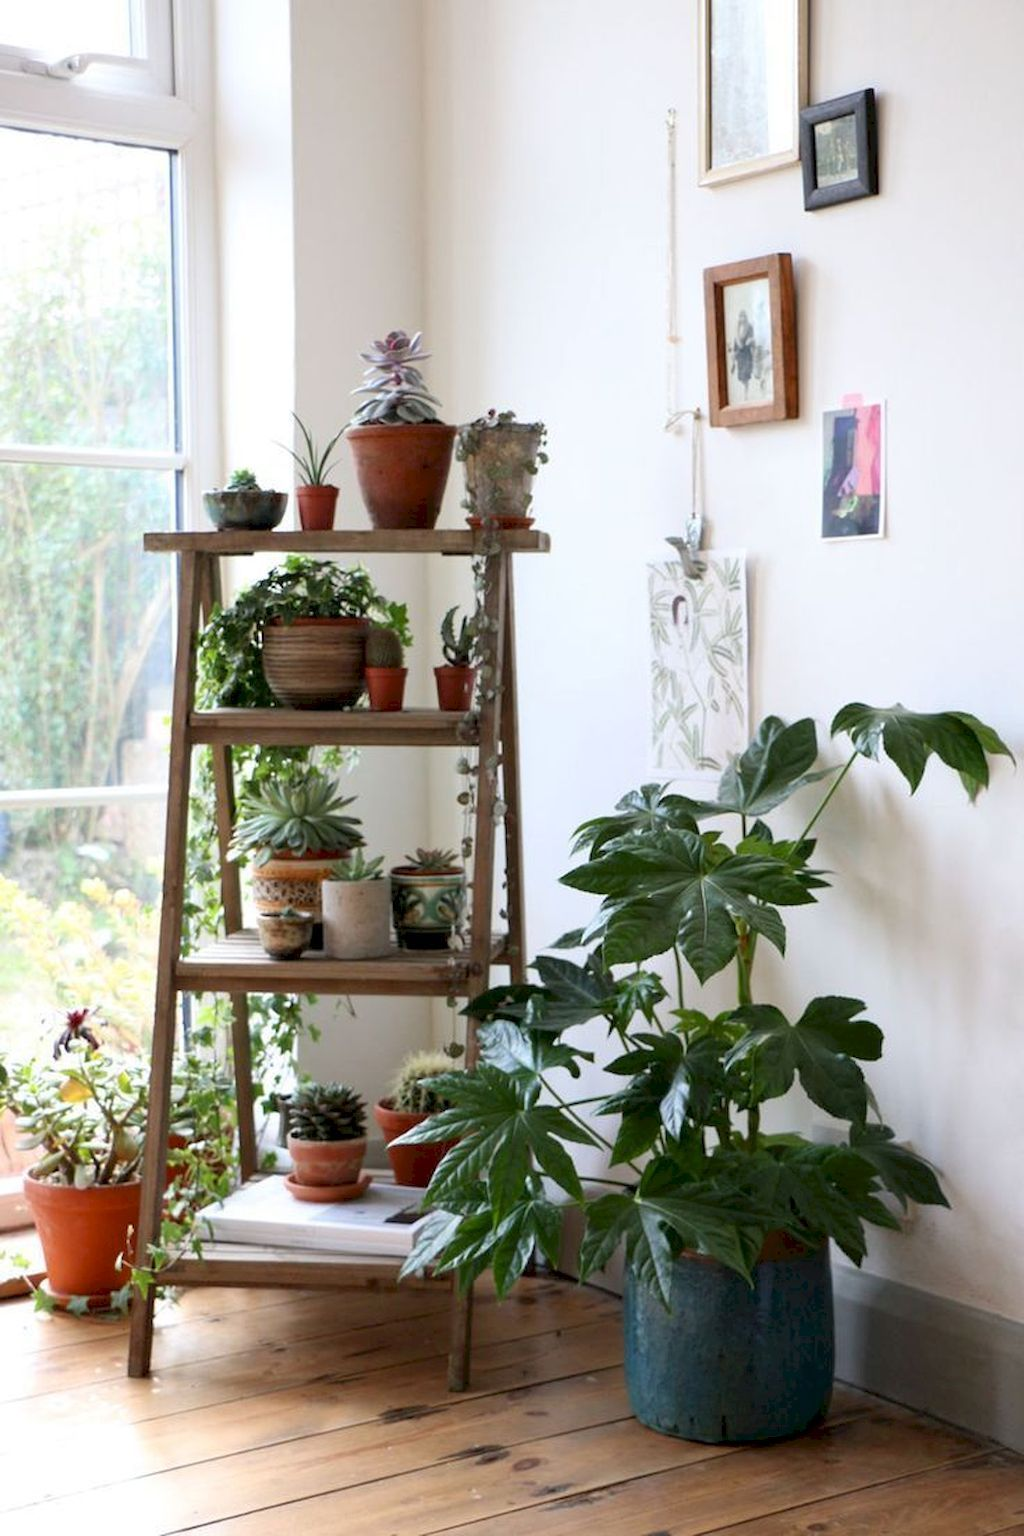 How To Make A Vertical Garden Wall Hanging Pot (With